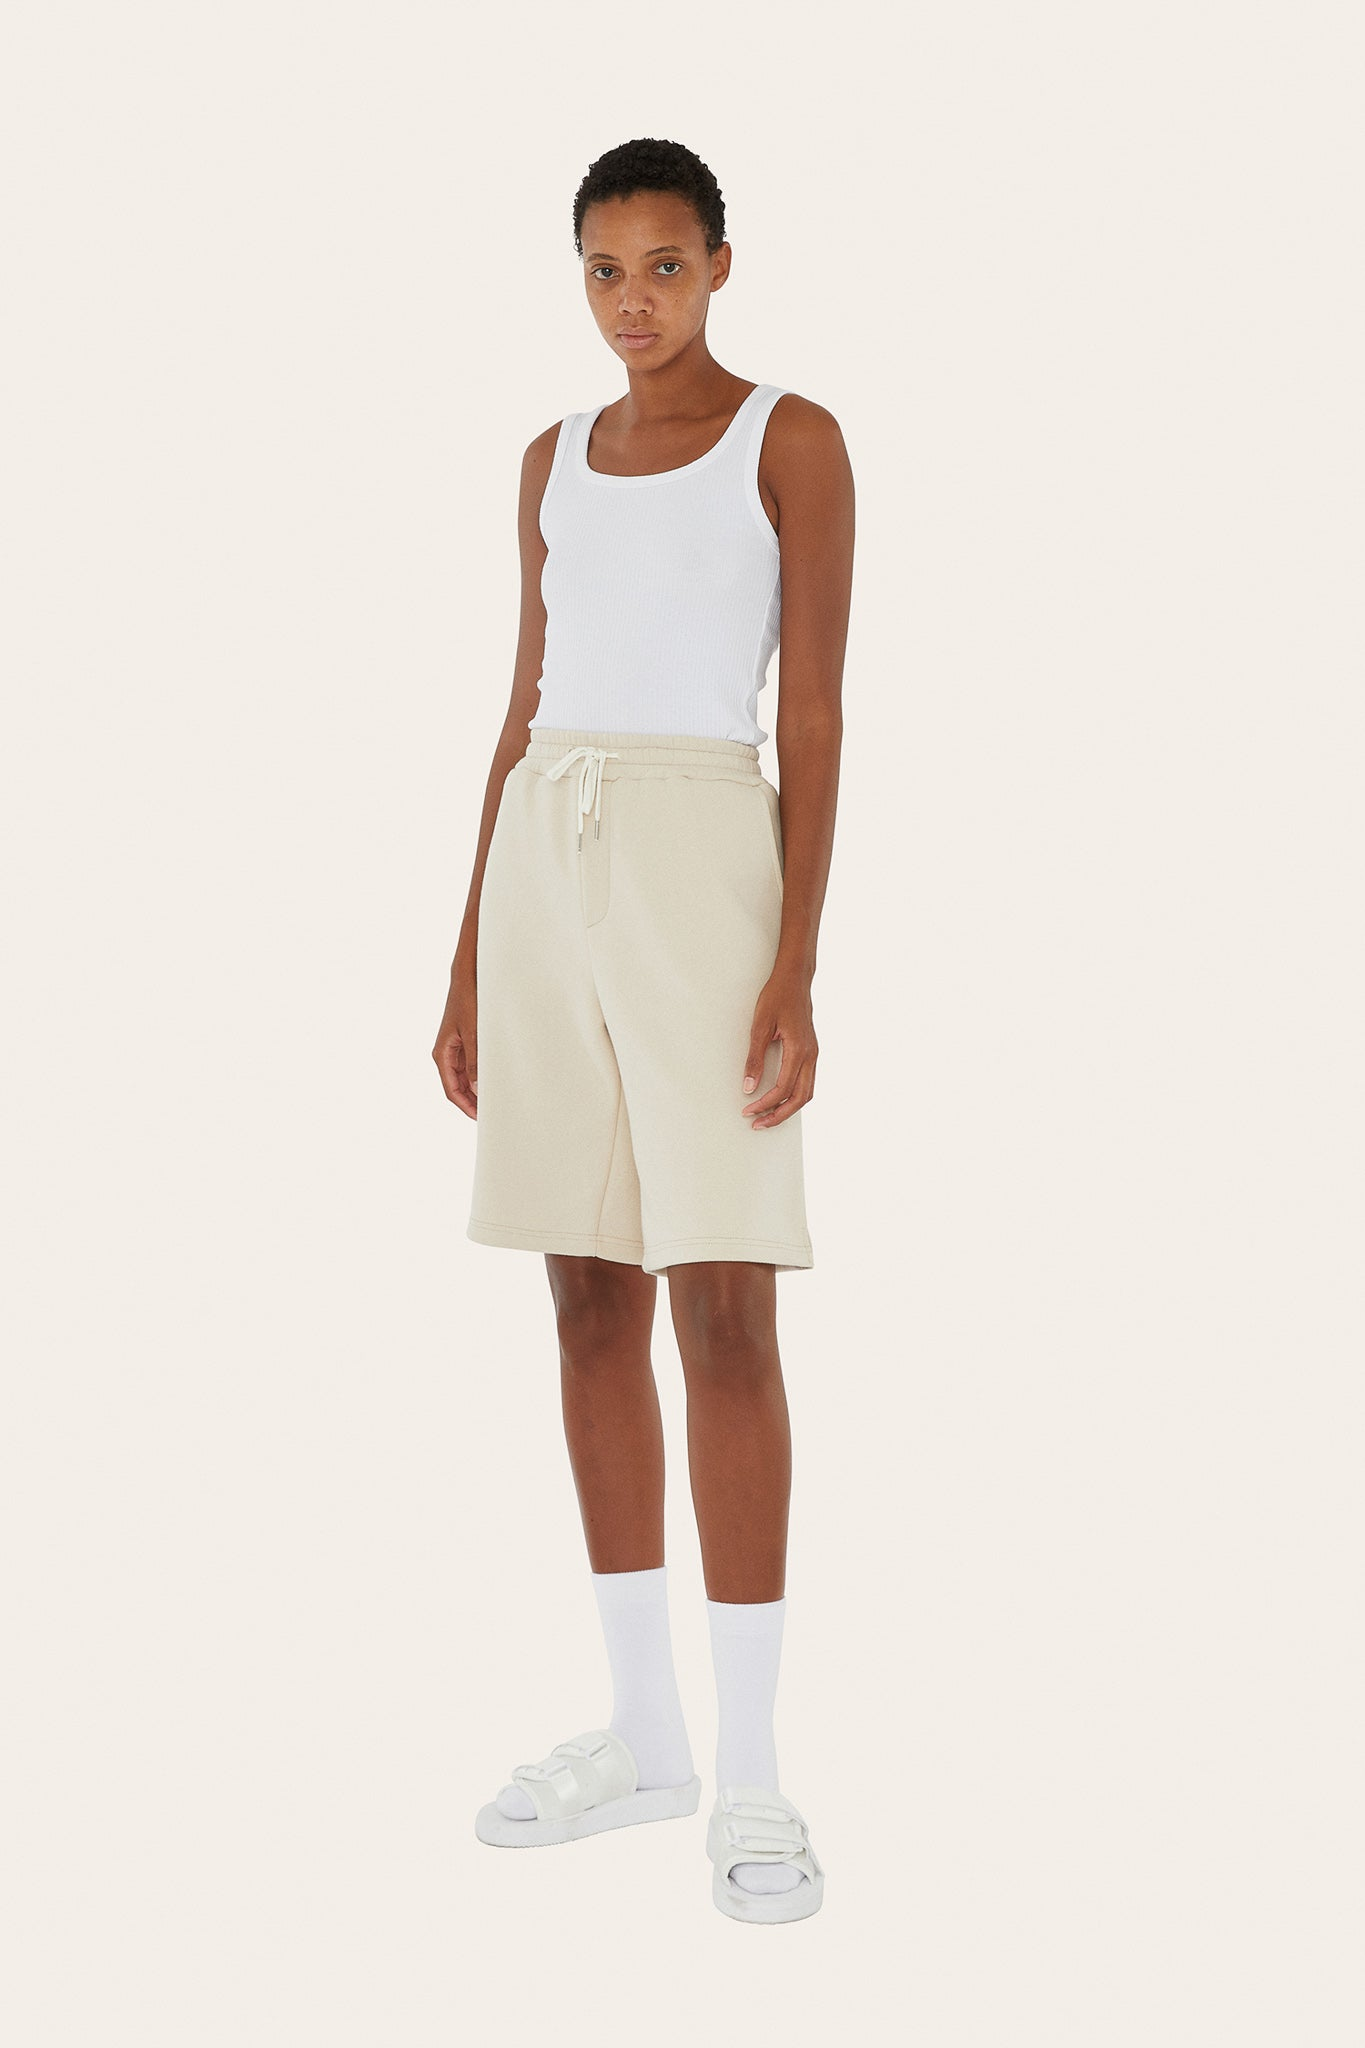 Seventh product - Sweat Shorts in Butter